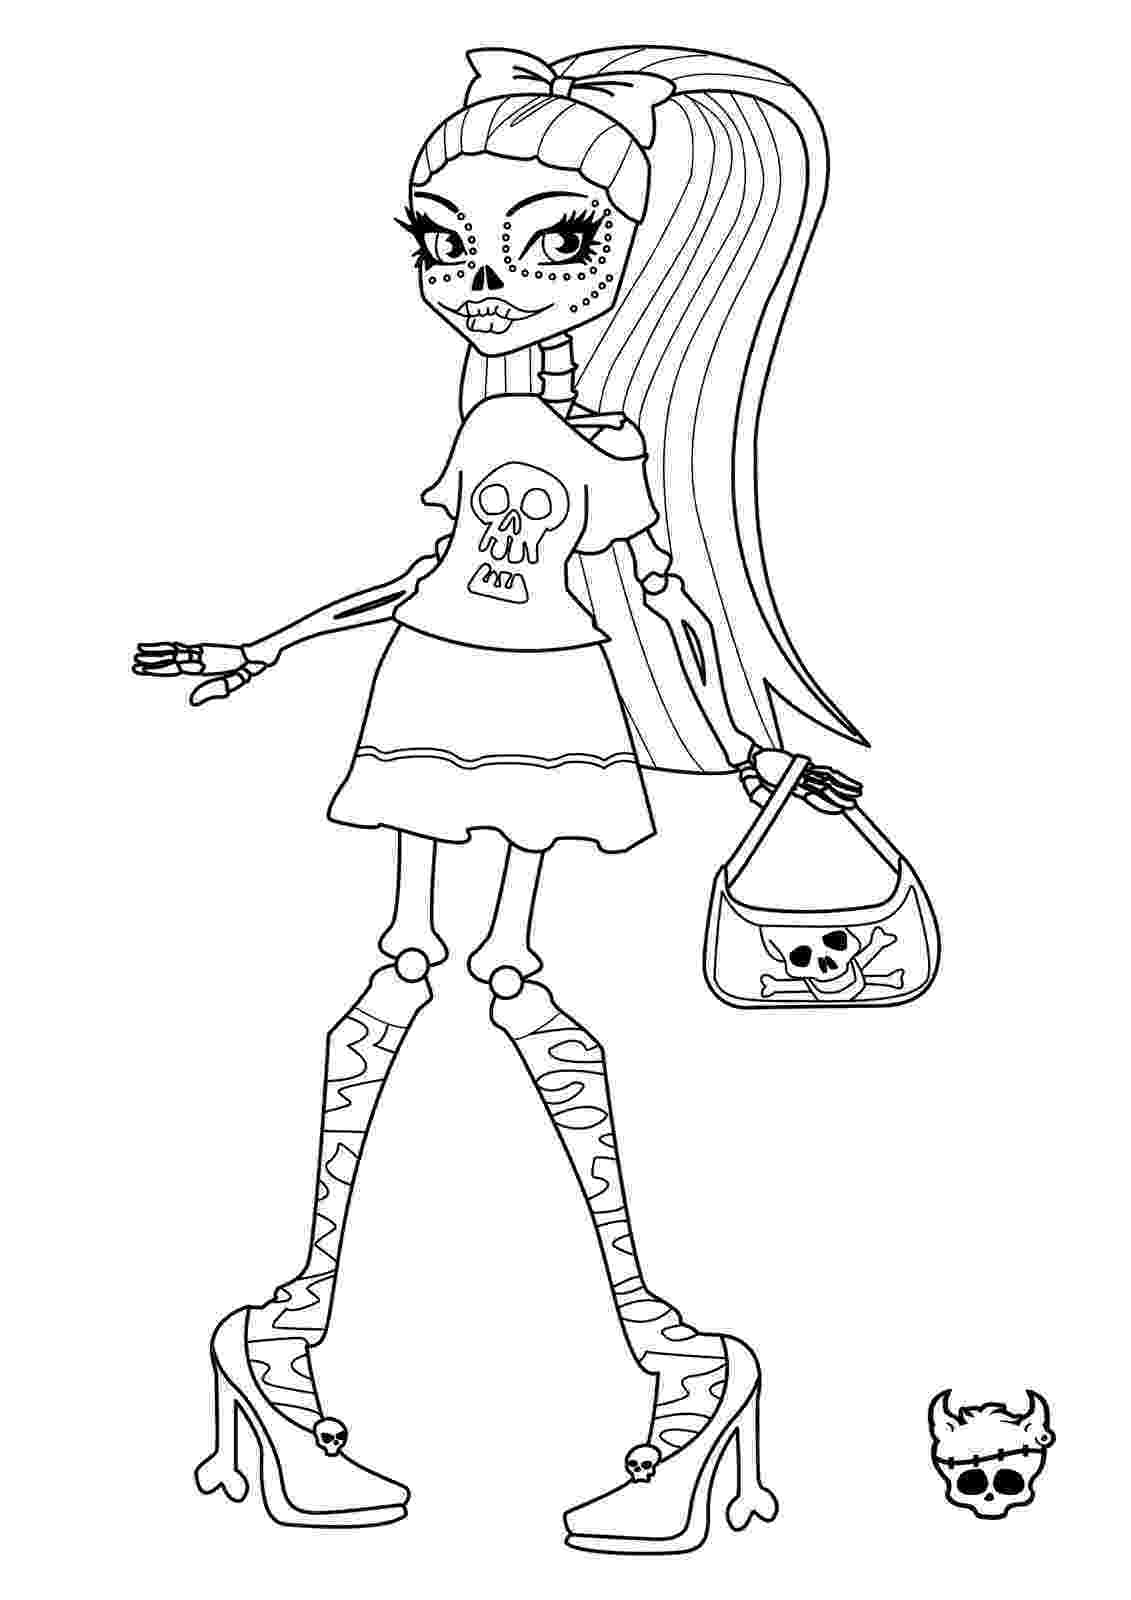 coloring pages for monster high monster high coloring pages 360coloringpages for coloring monster pages high